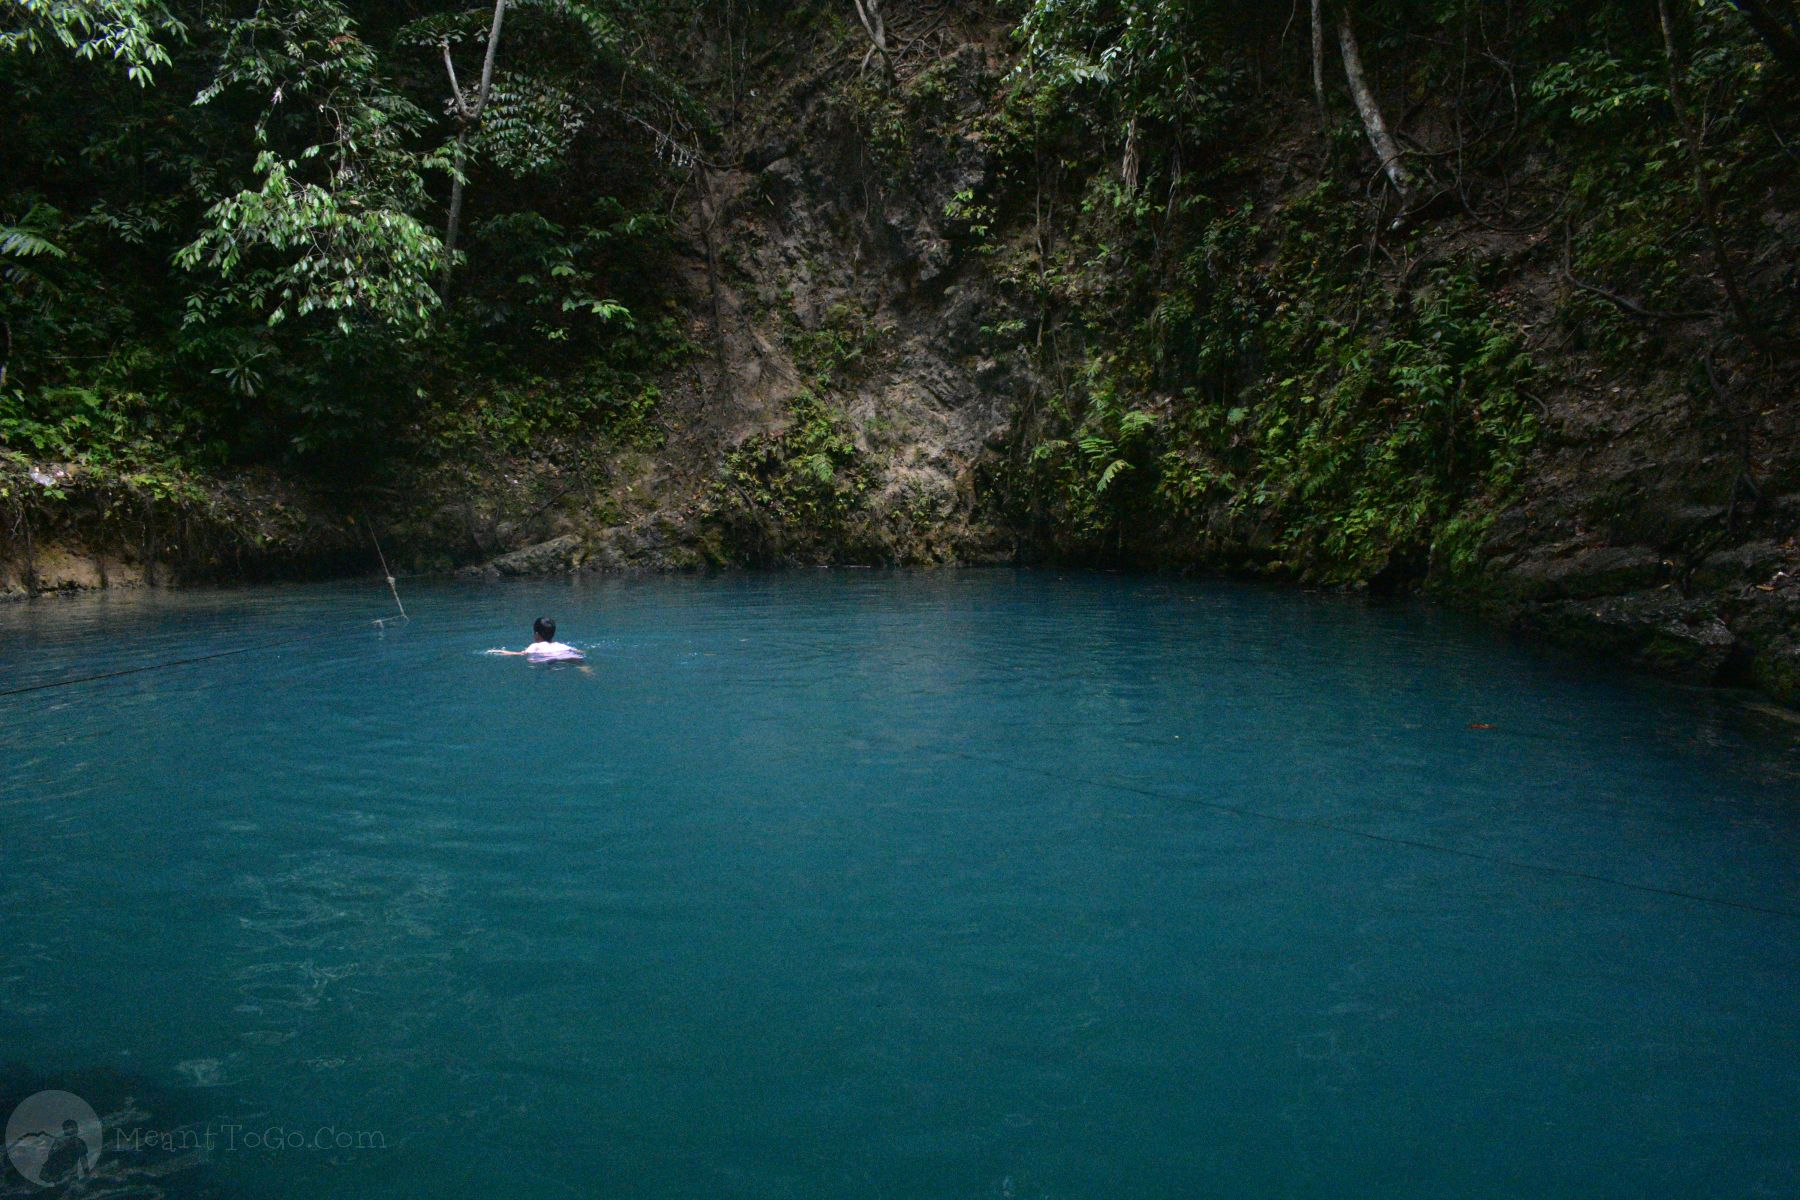 Canawa Cold Spring, Candijay, Bohol, Philippines